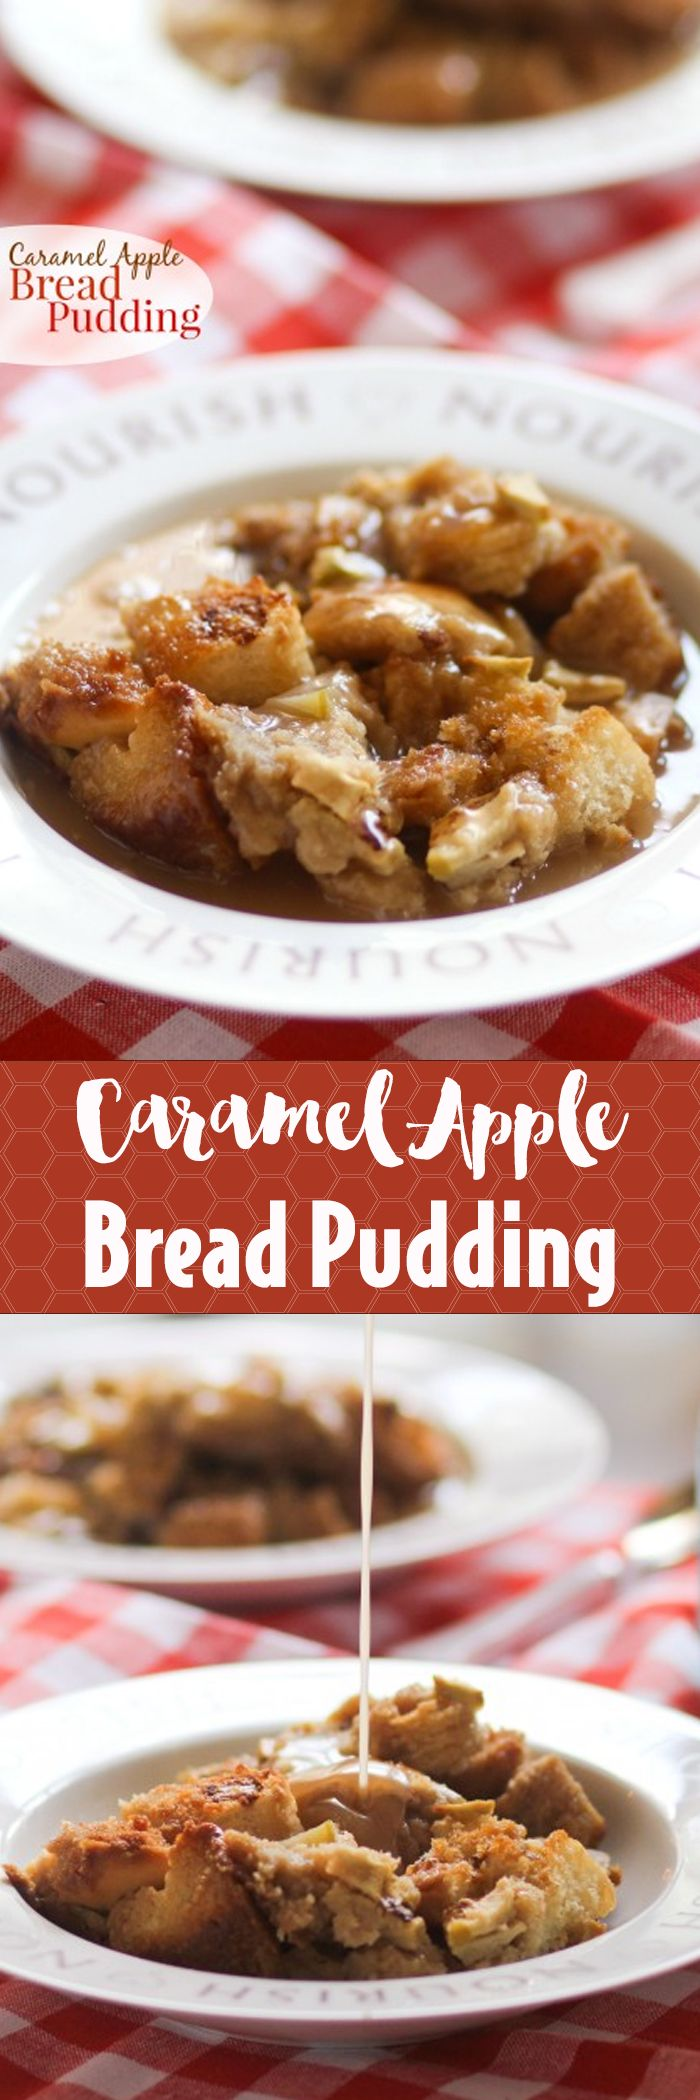 Caramel Apple Bread Pudding -- so cozy and comforting! Perfect fall dessert!